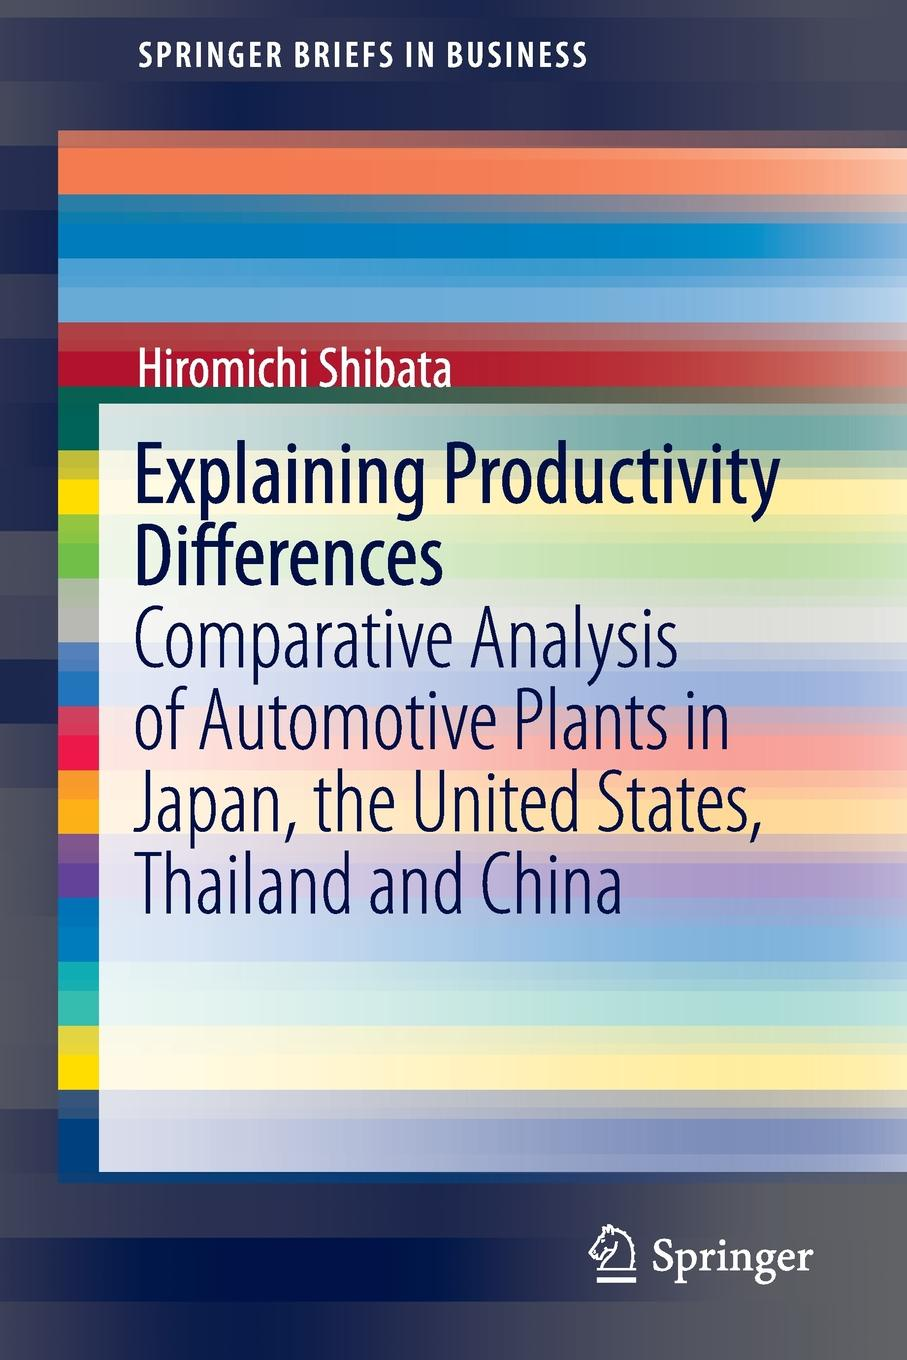 купить Hiromichi Shibata Explaining Productivity Differences. Comparative Analysis of Automotive Plants in Japan, the United States, Thailand and China по цене 9464 рублей